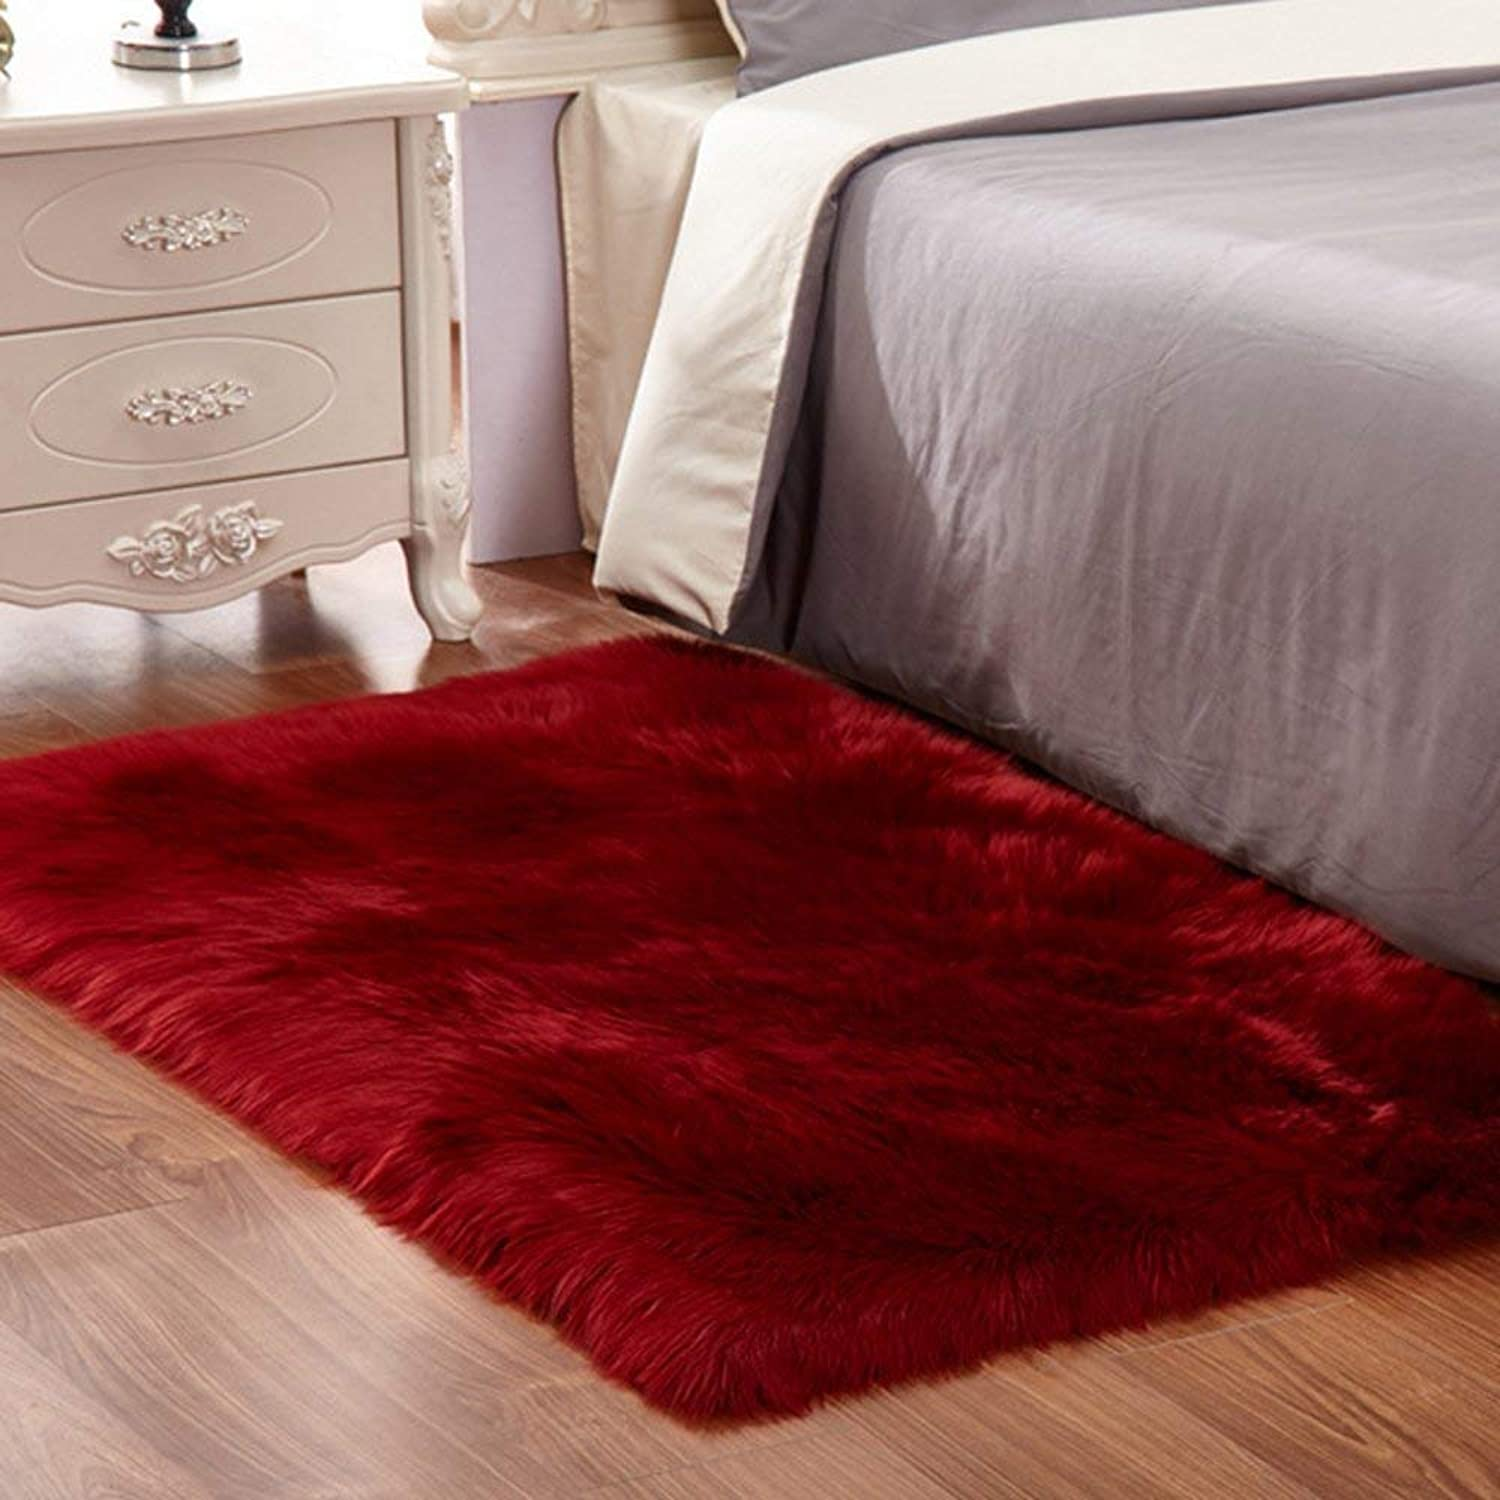 Rug Bedroom Soft and Fluffy Easy to Clean Room Decor Rug Wine 2x3 ft